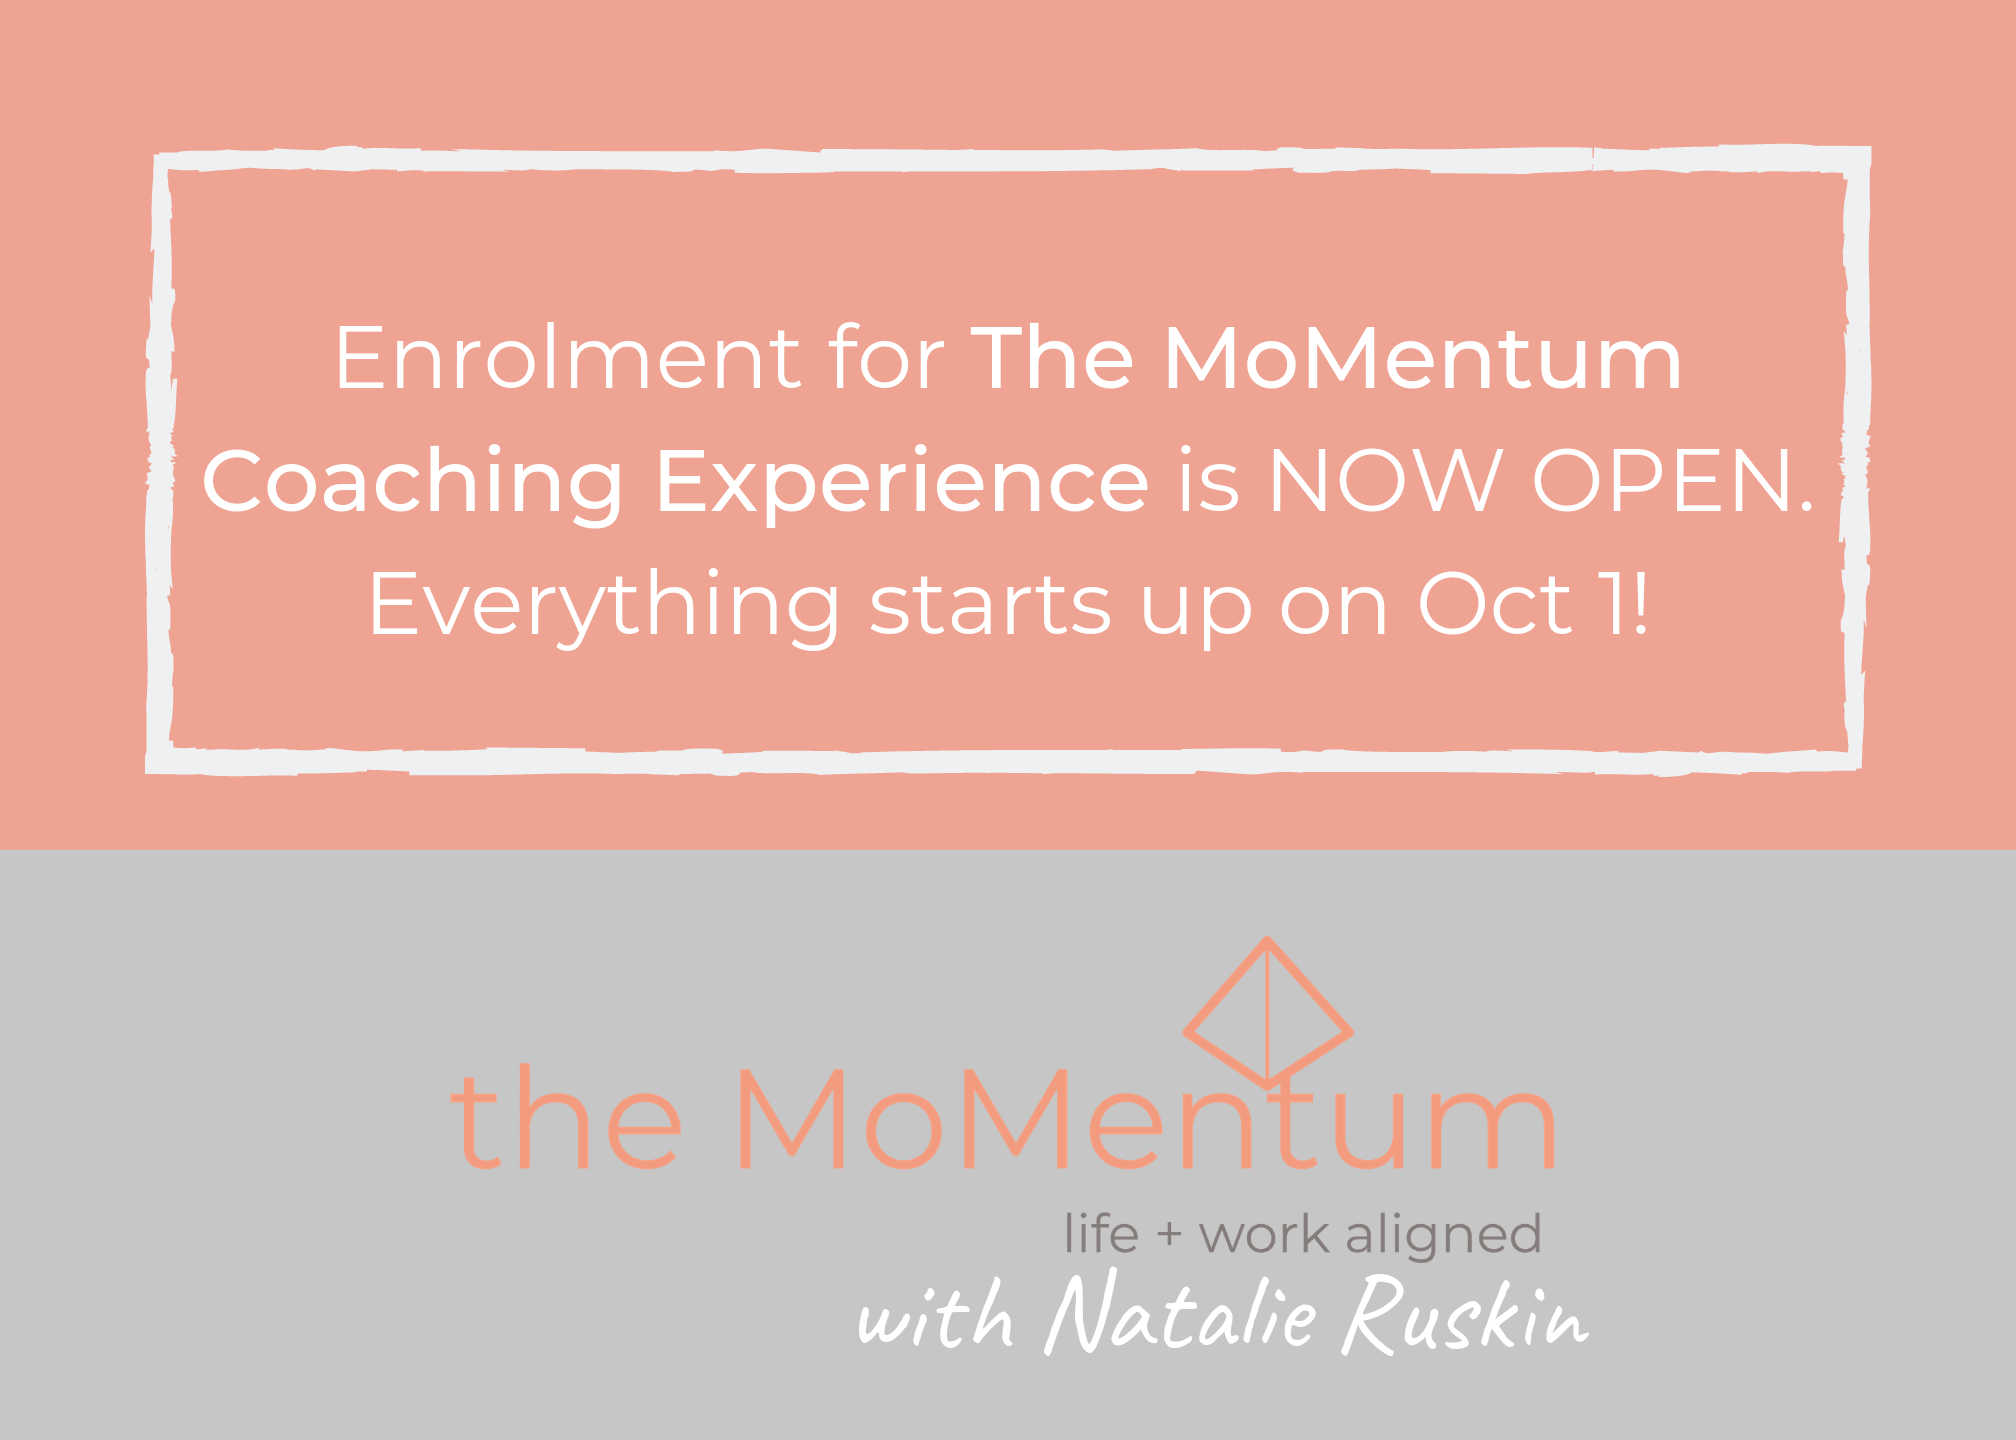 Enrolment for The MoMentum Coaching Experience is NOW OPEN. Everything starts up on Oct 1! (2).png